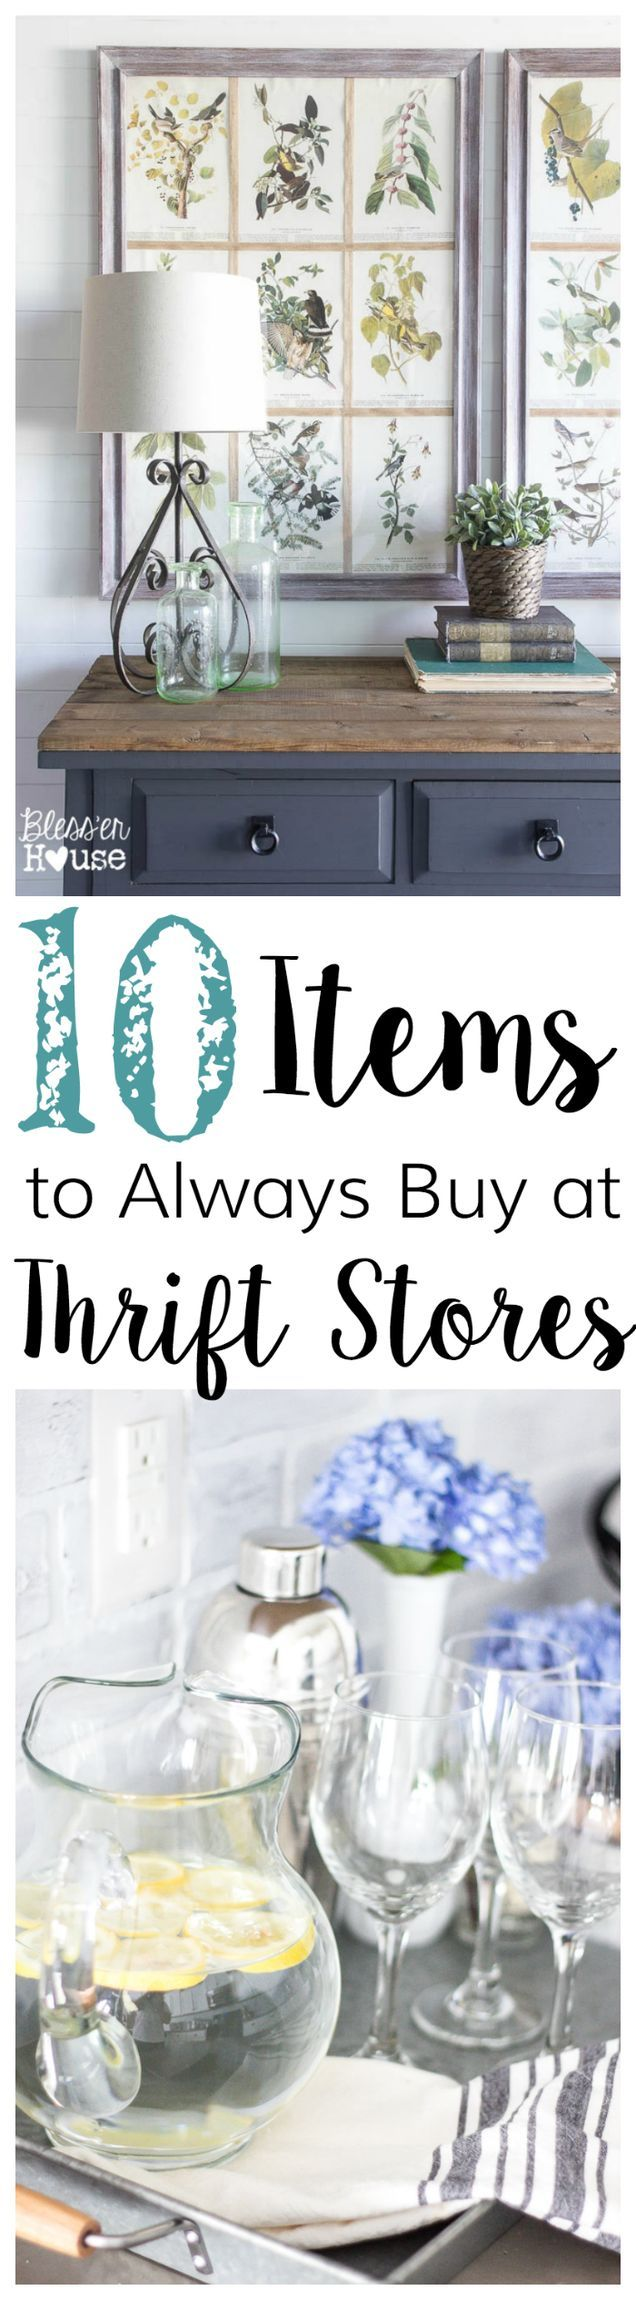 10 Items To Always Buy At Thrift Stores